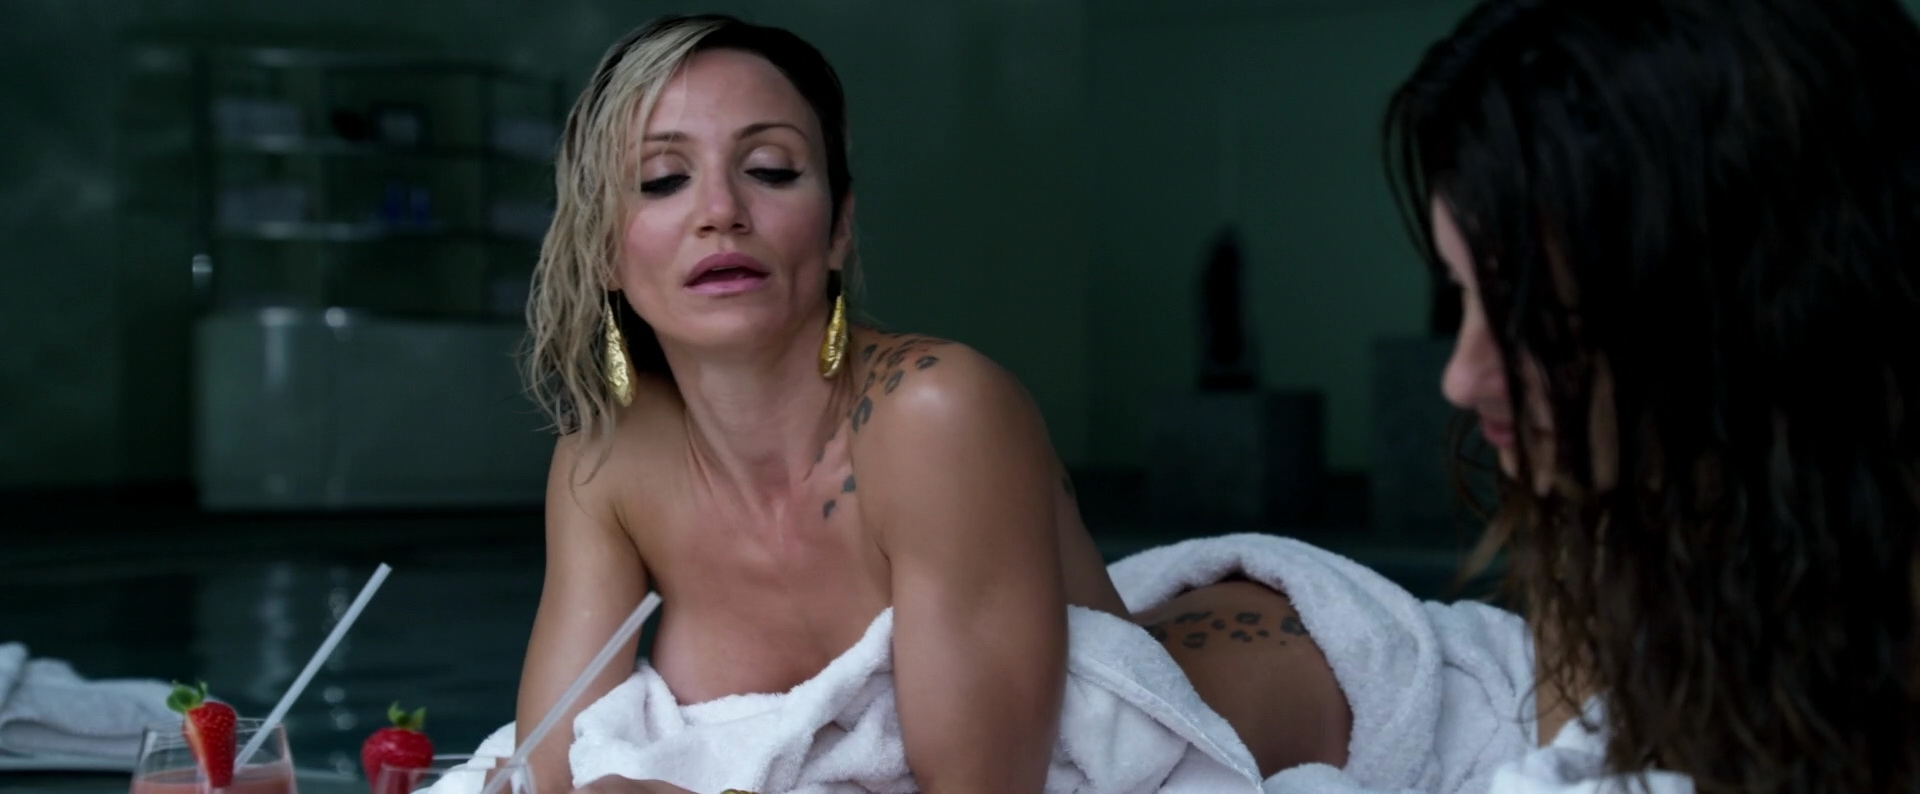 Watch cameron diaz porn